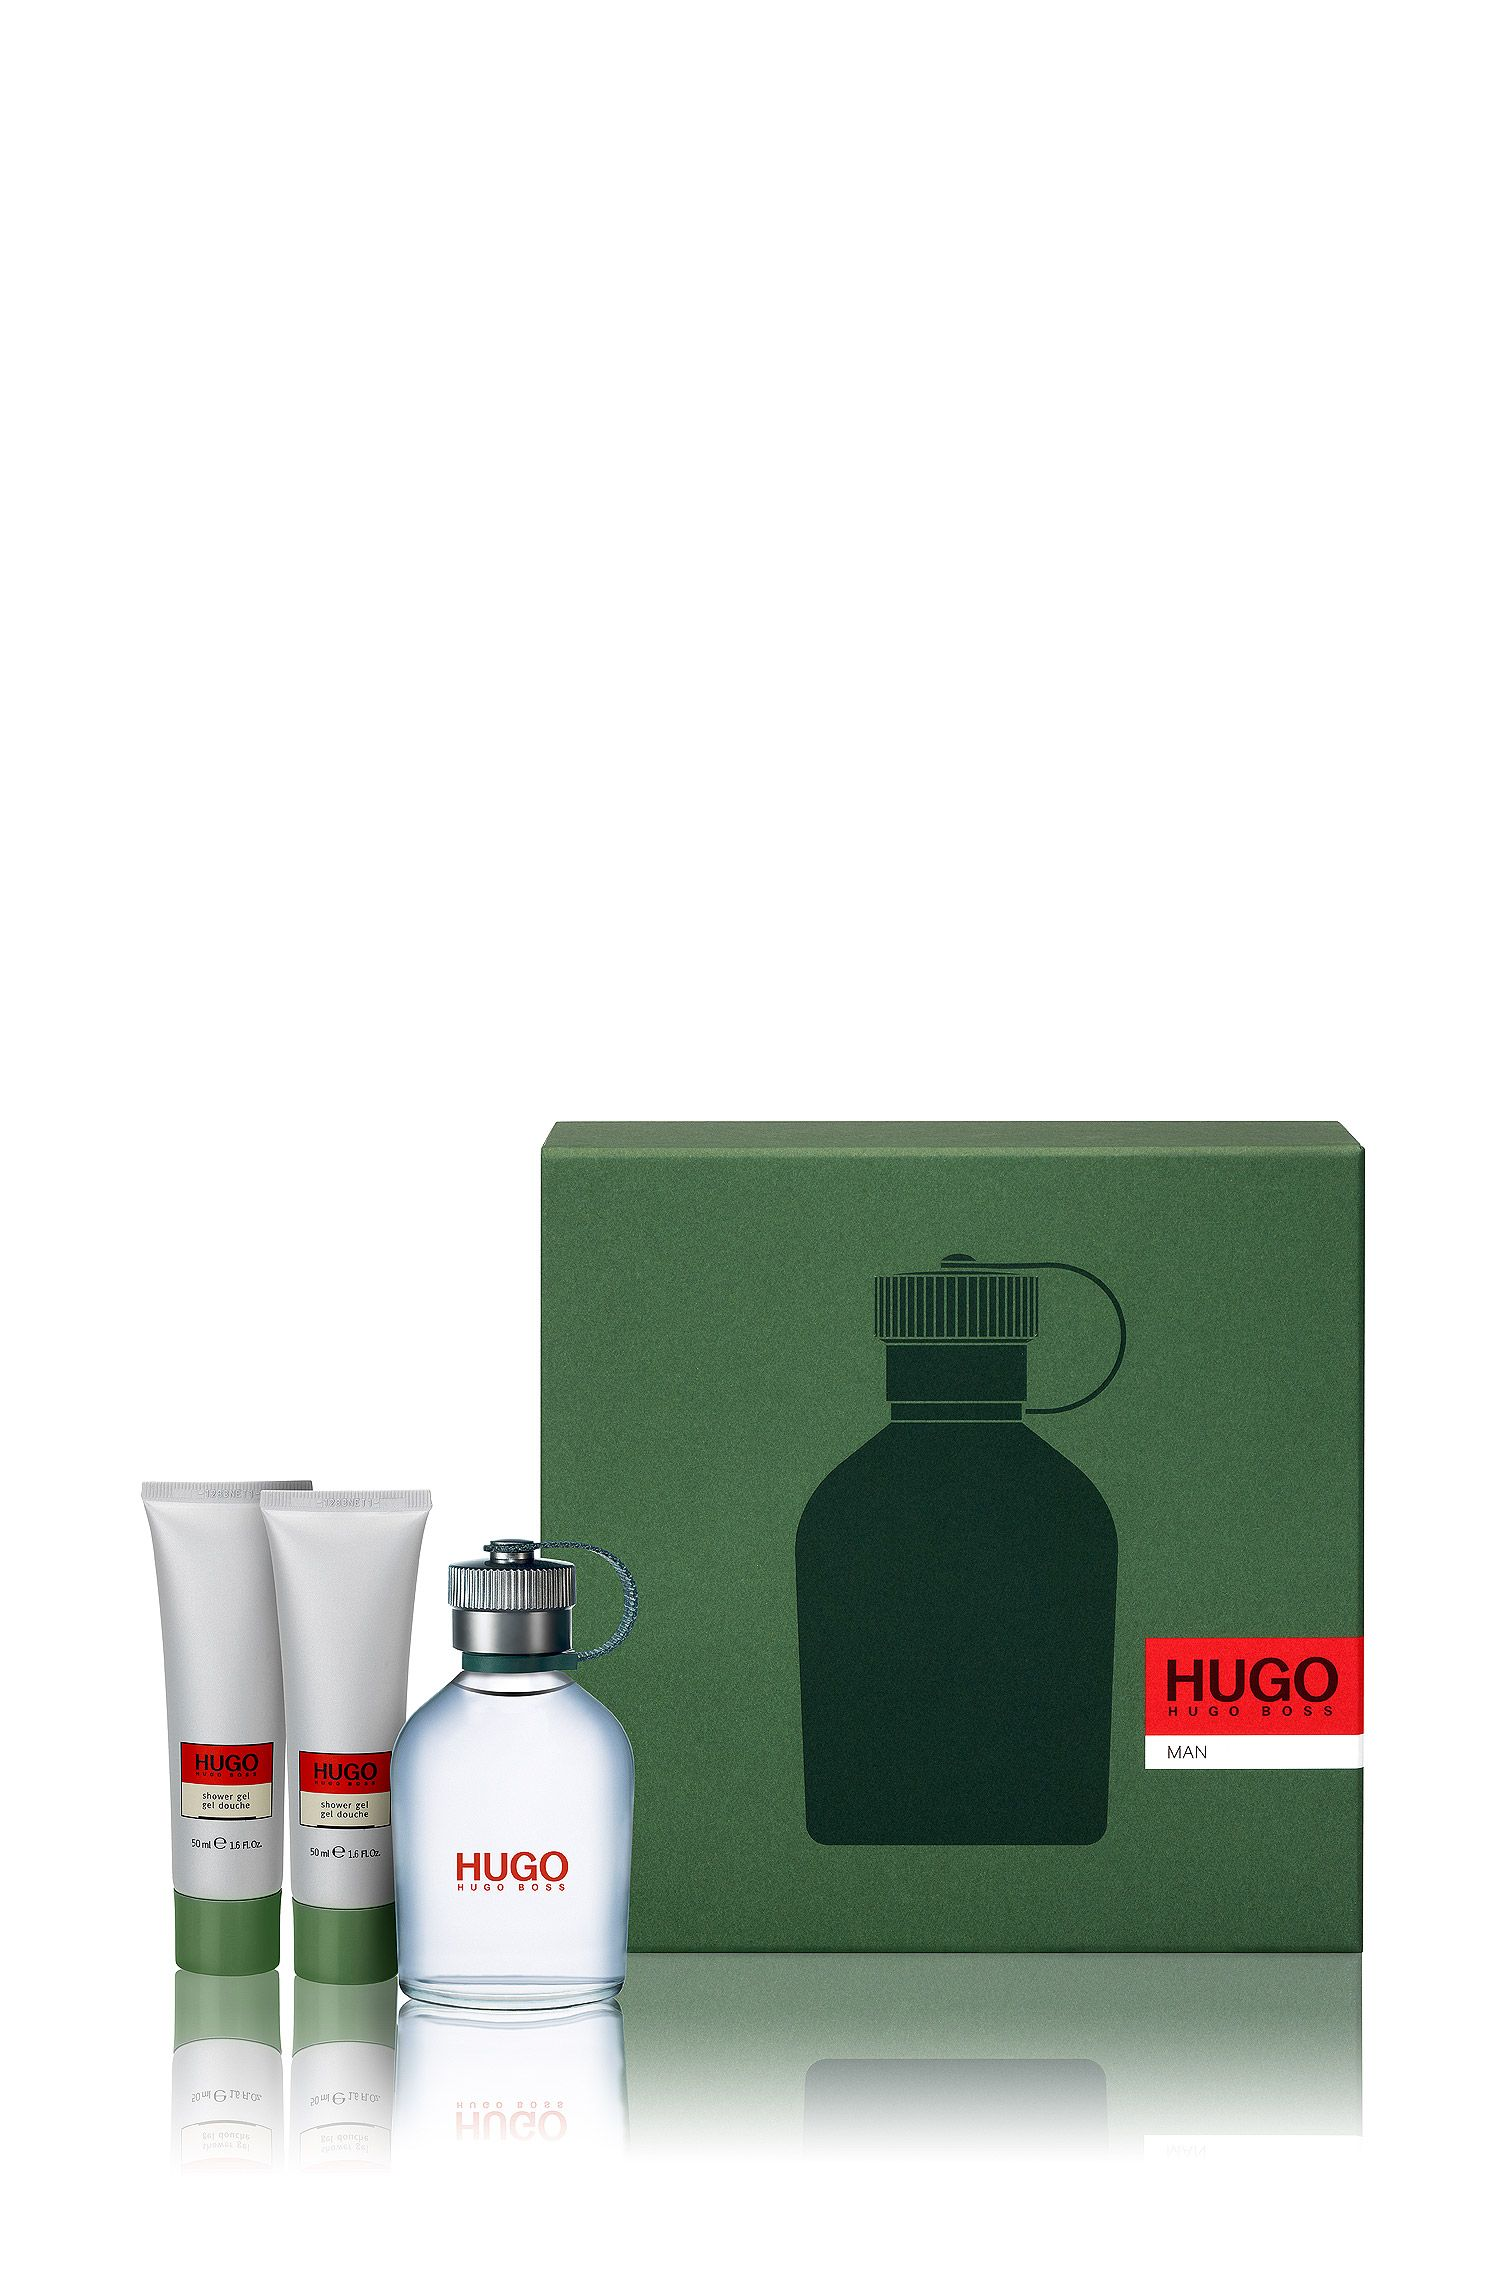 Cadeauset 'HUGO Man' met eau de toilette 100 ml en douchegel